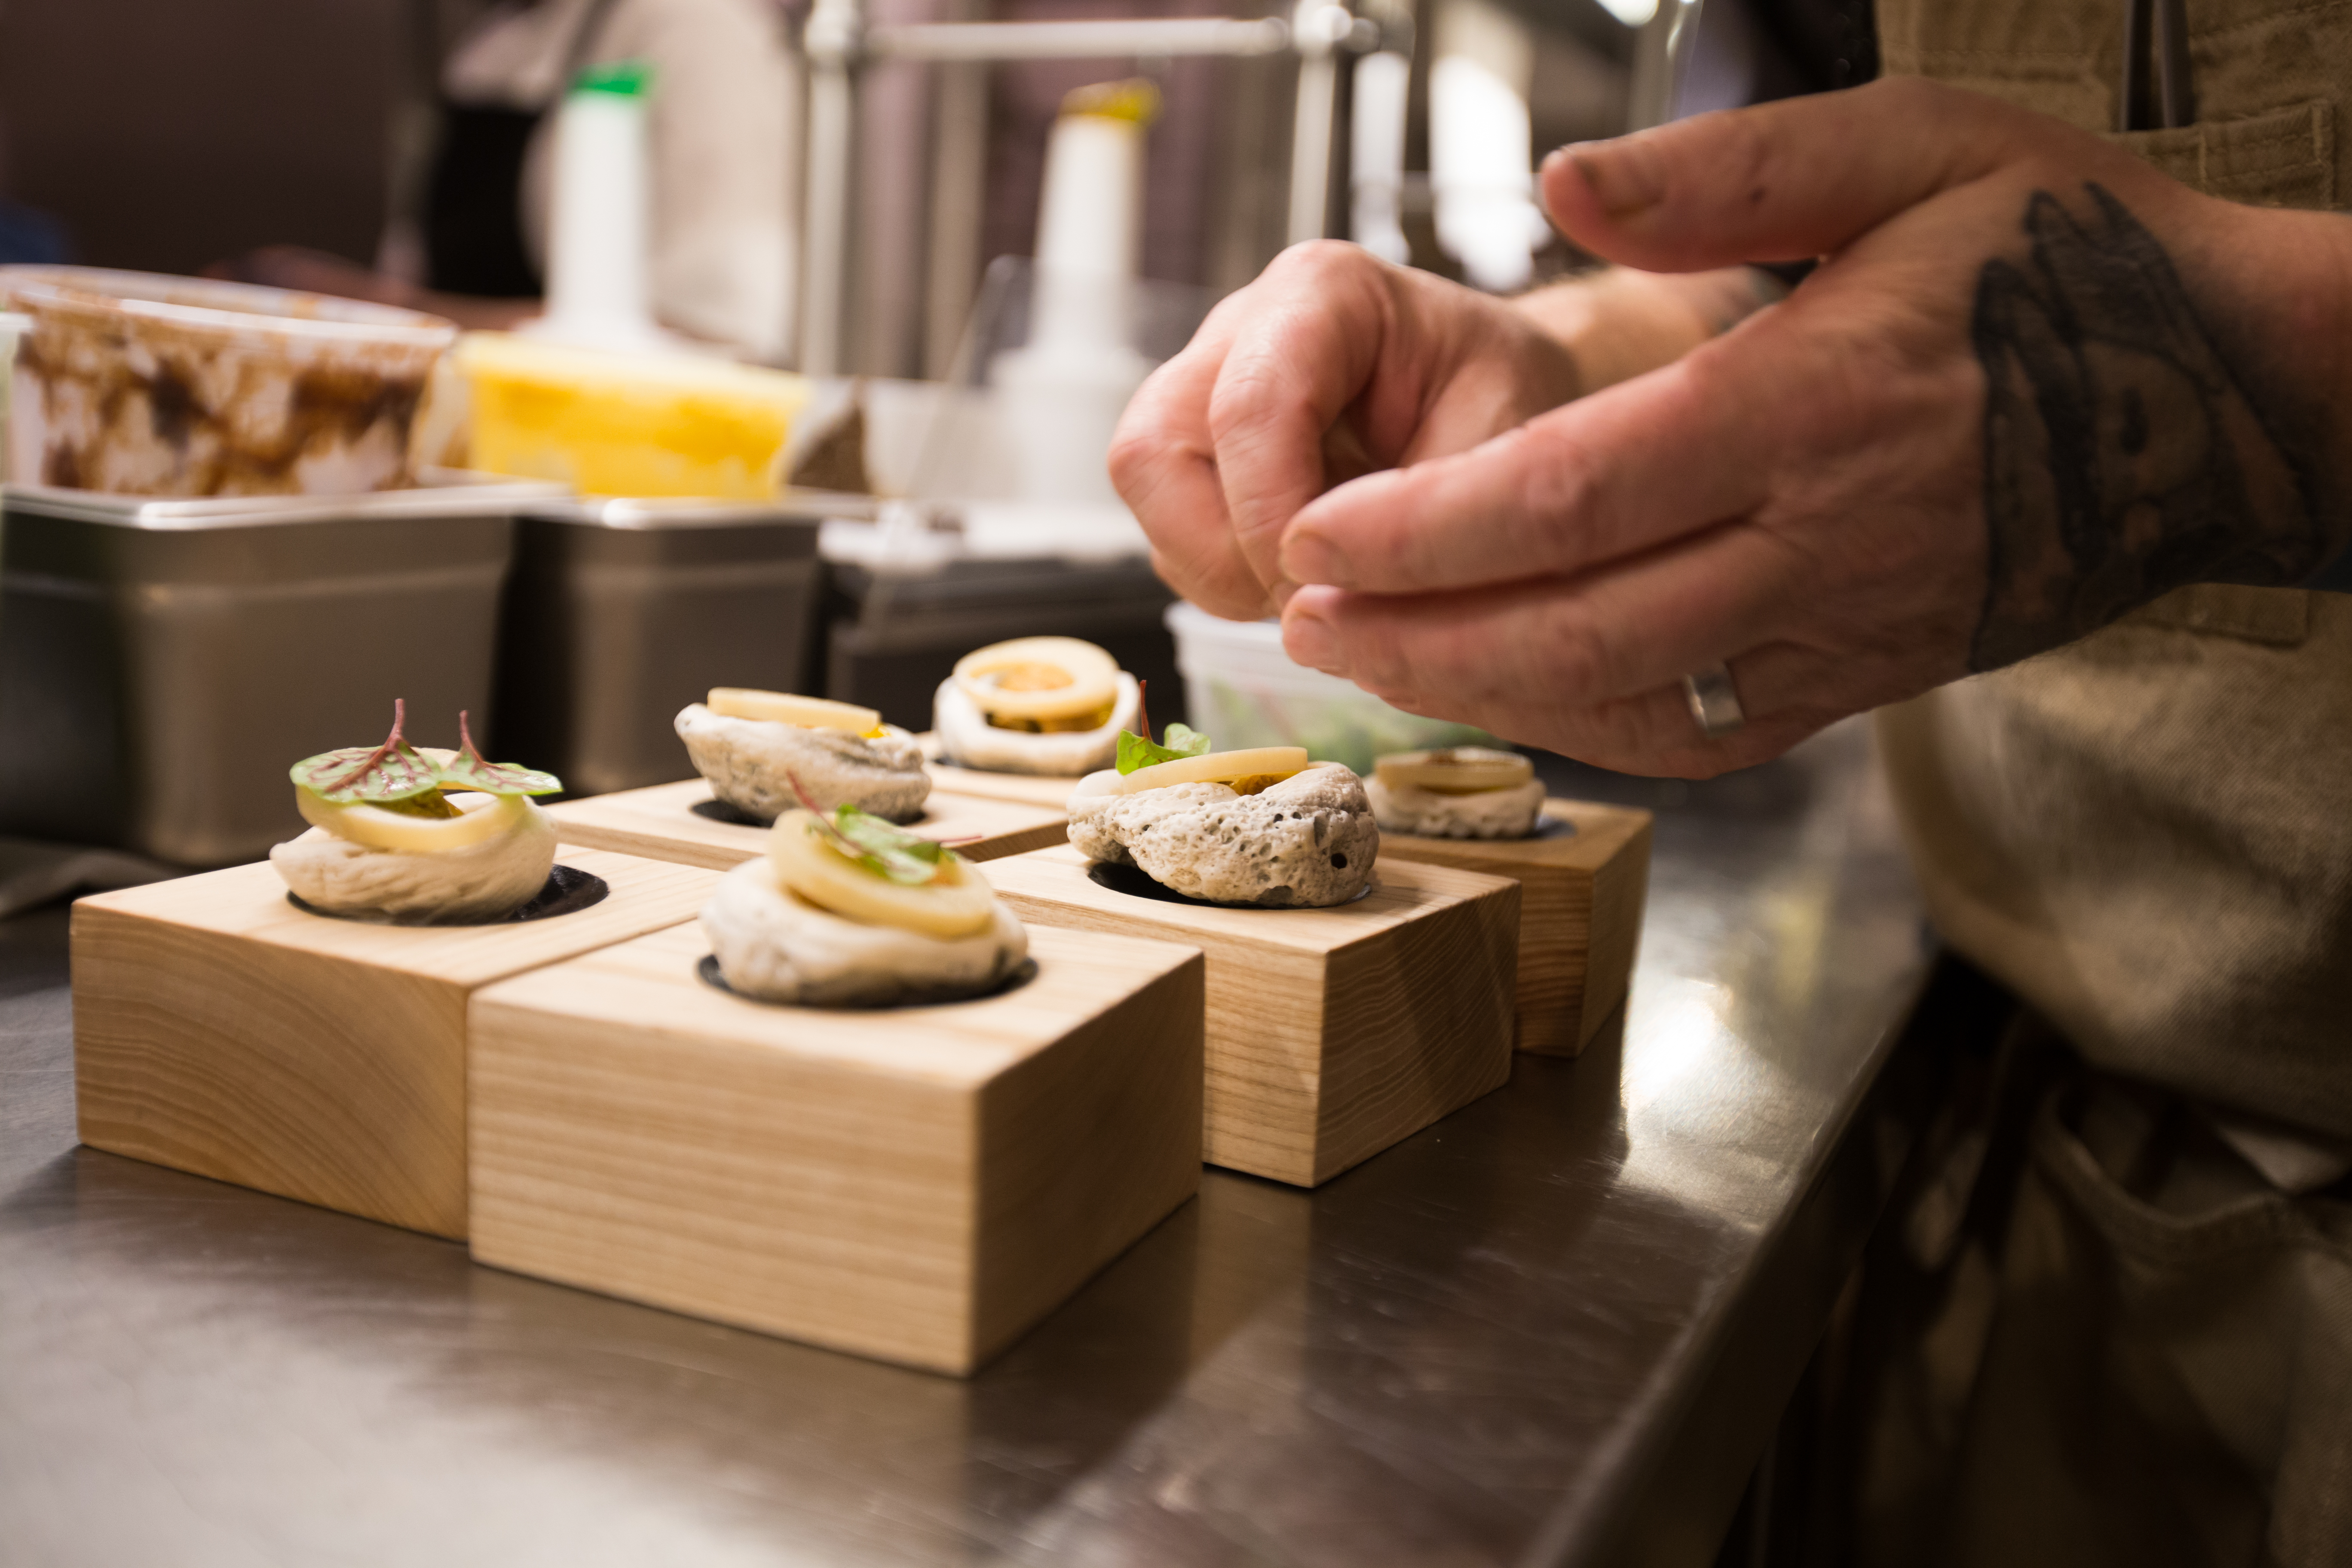 Plating at Upton 43's chef's table.